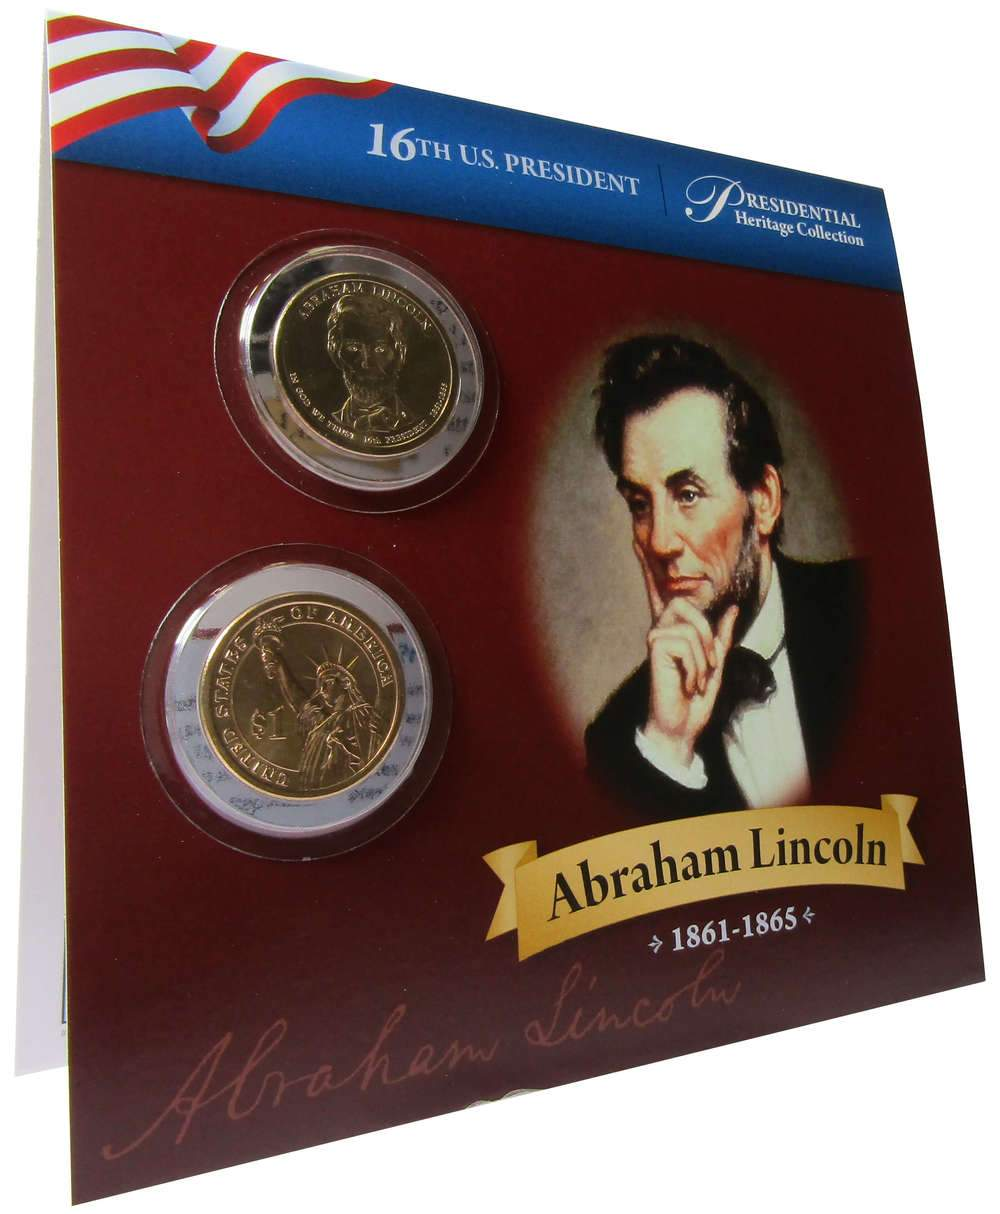 2010 ABRAHAM LINCOLN PRESIDENT DOLLAR P or D 1-COIN BRILLIANT UNCIRCULATED